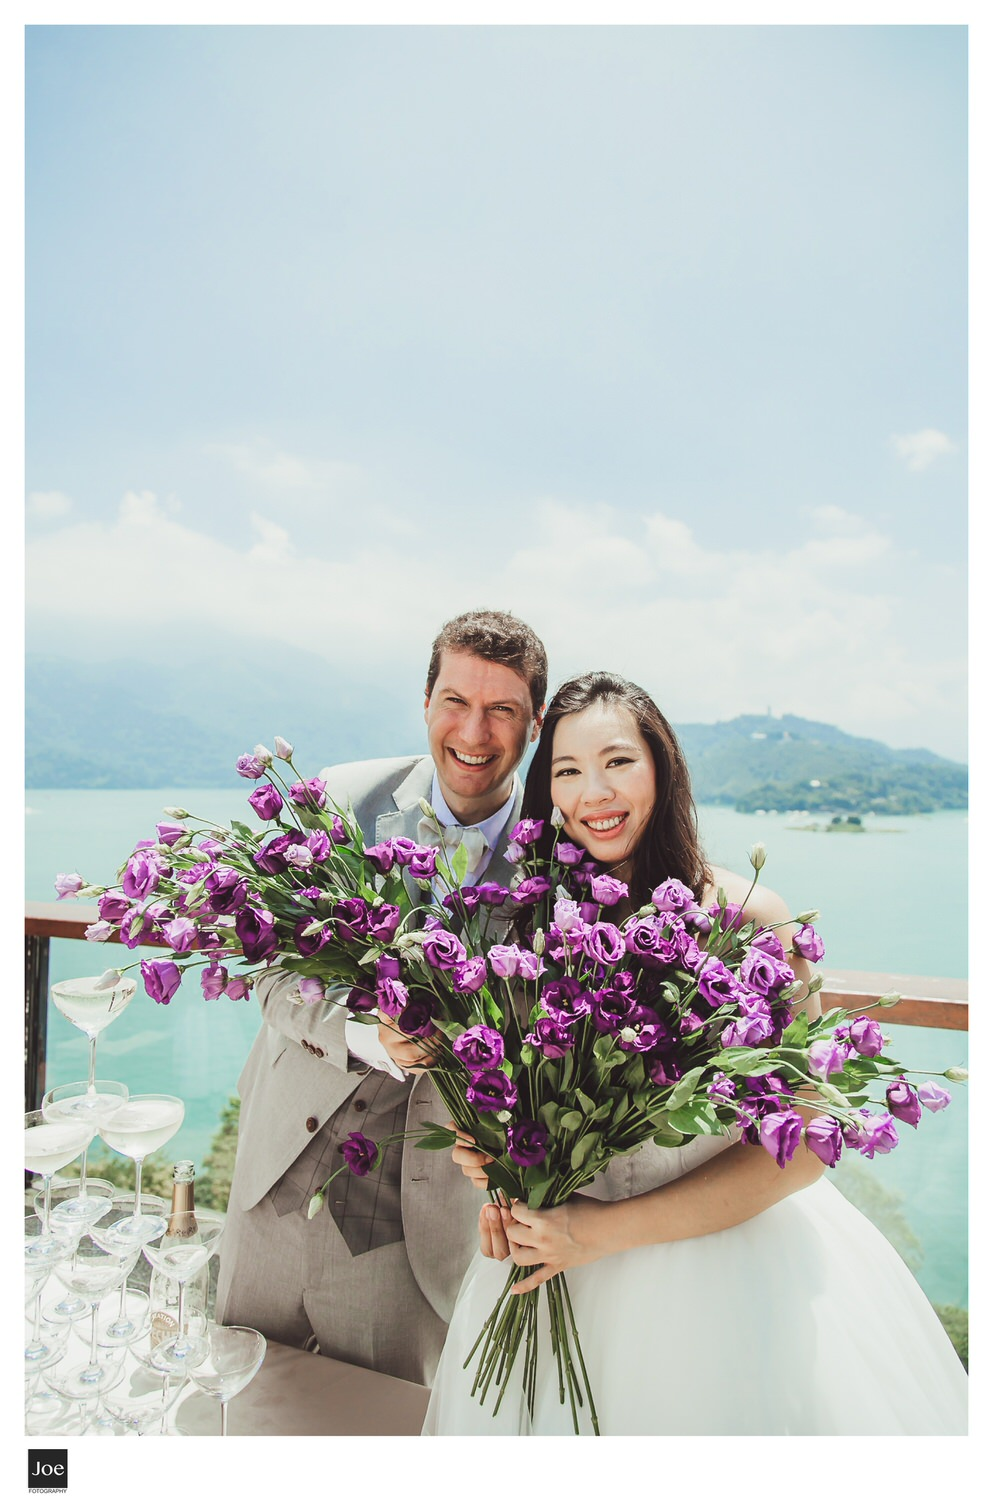 joe-fotography-the-lalu-sun-moon-lake-wedding-kay-geoffrey-211.jpg